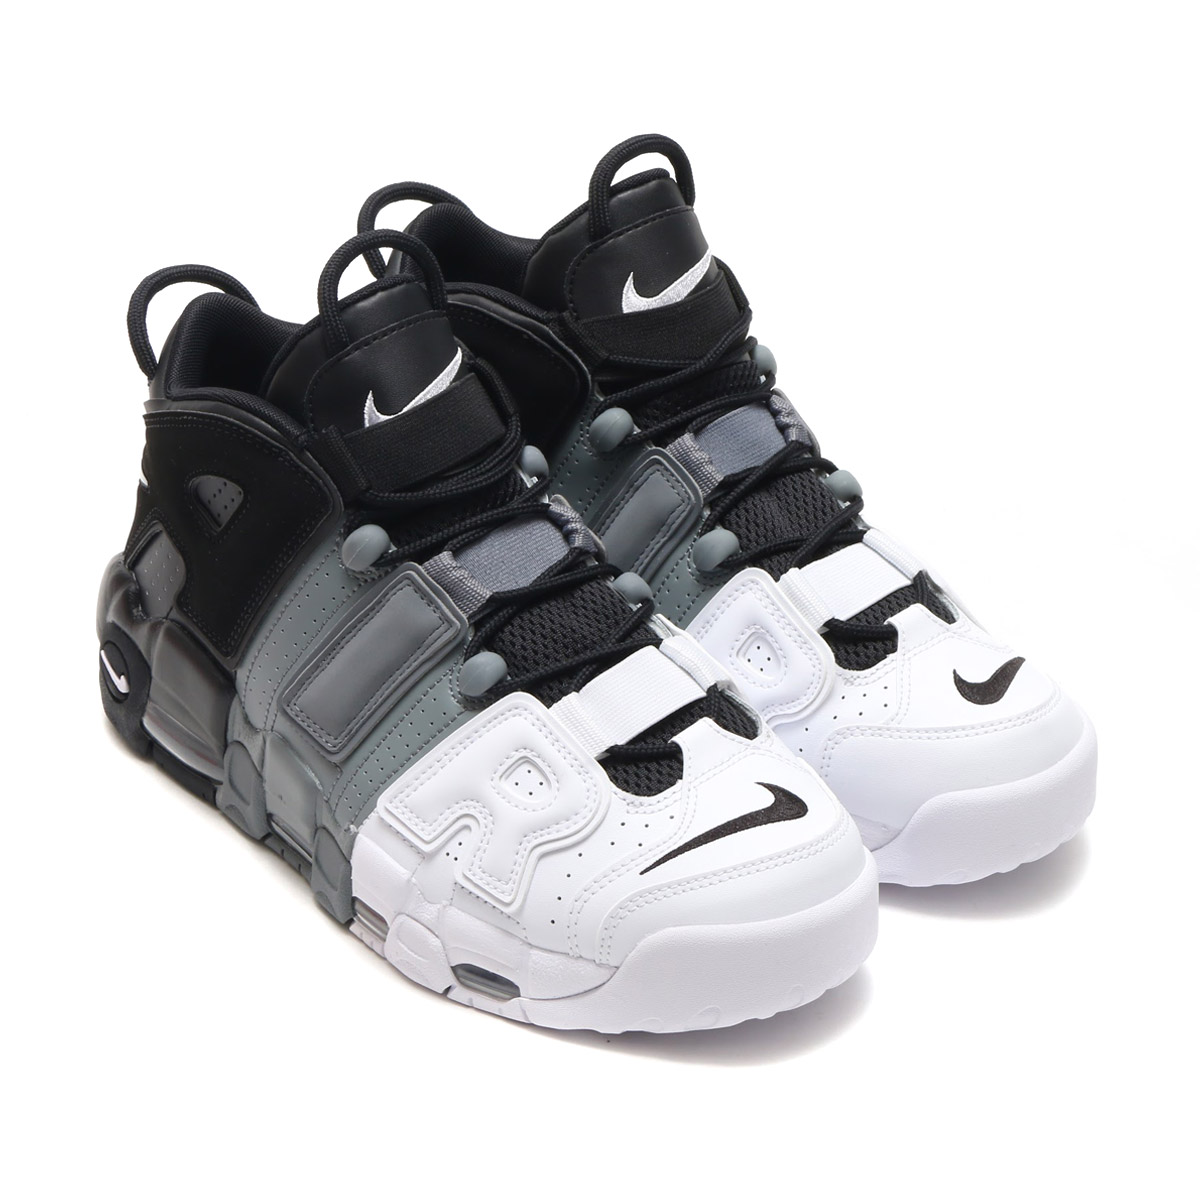 12609b96fb00 ... new zealand nike air more uptempo 96 nike more up tempo 96 black black  cool grey